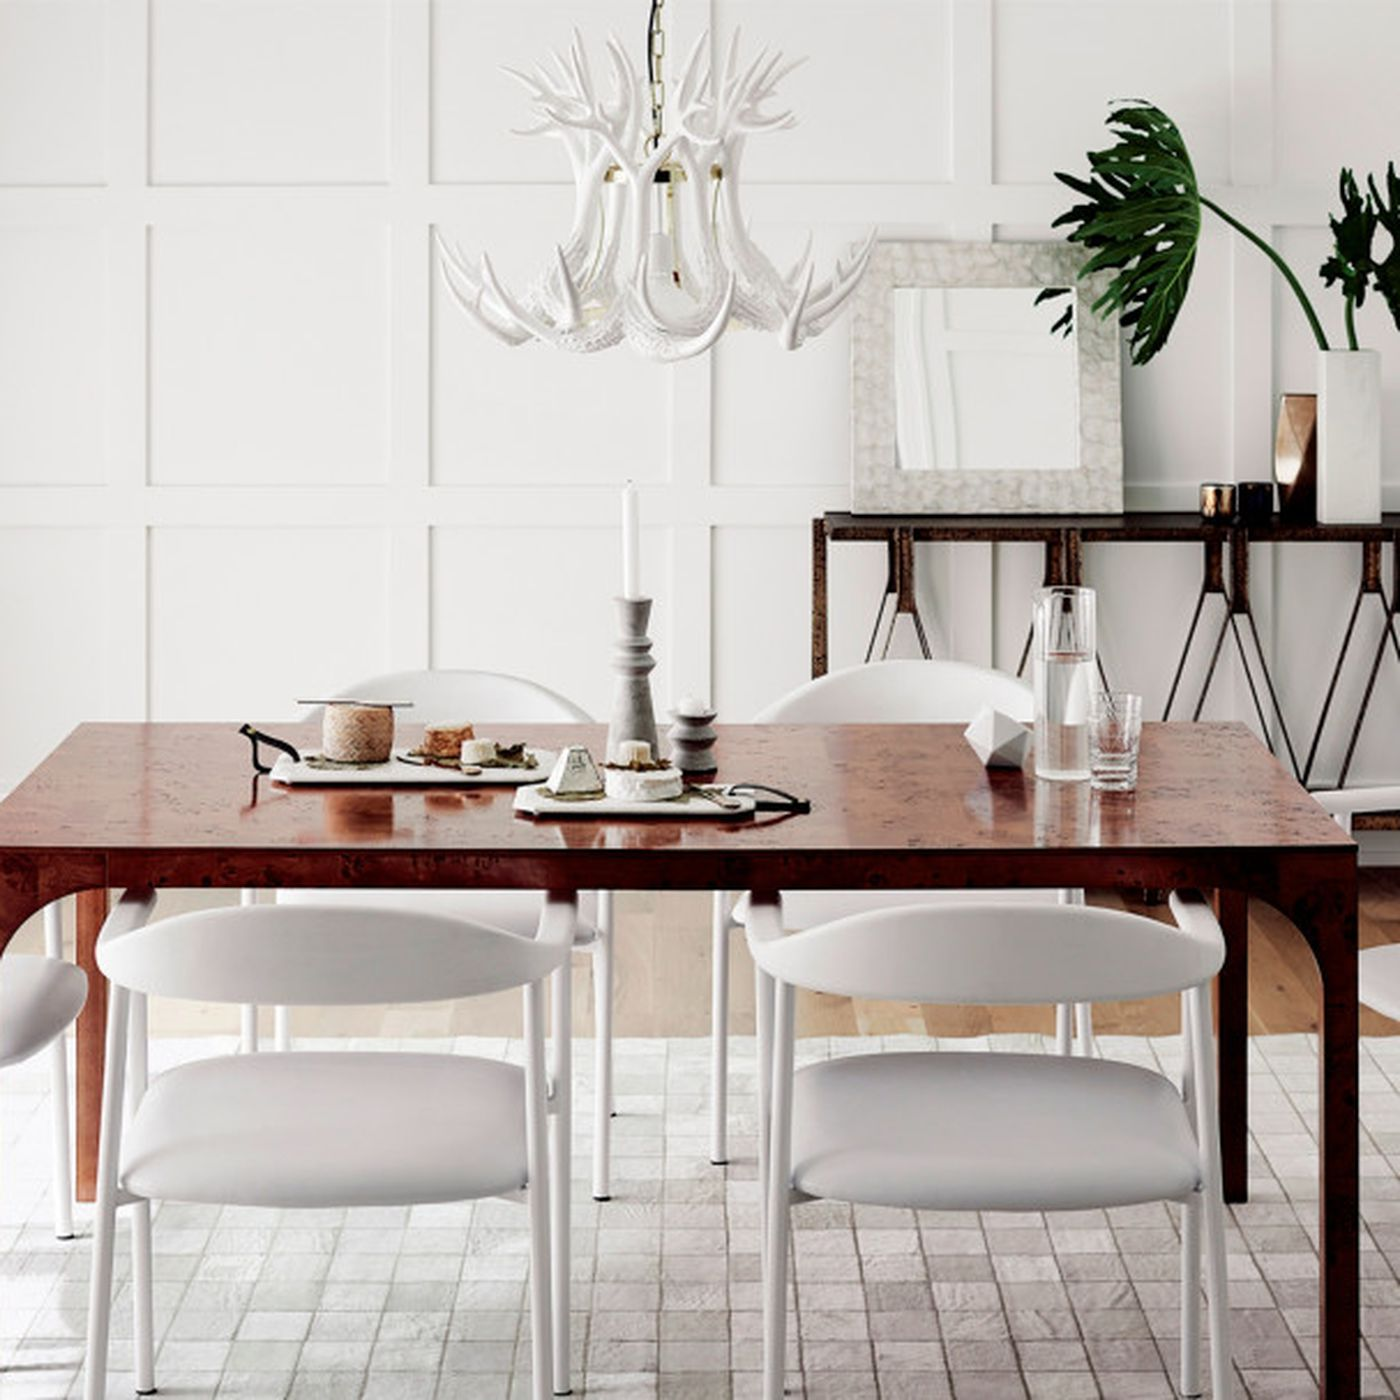 Top Tips for Buy a Dining Table with Stools Underneath